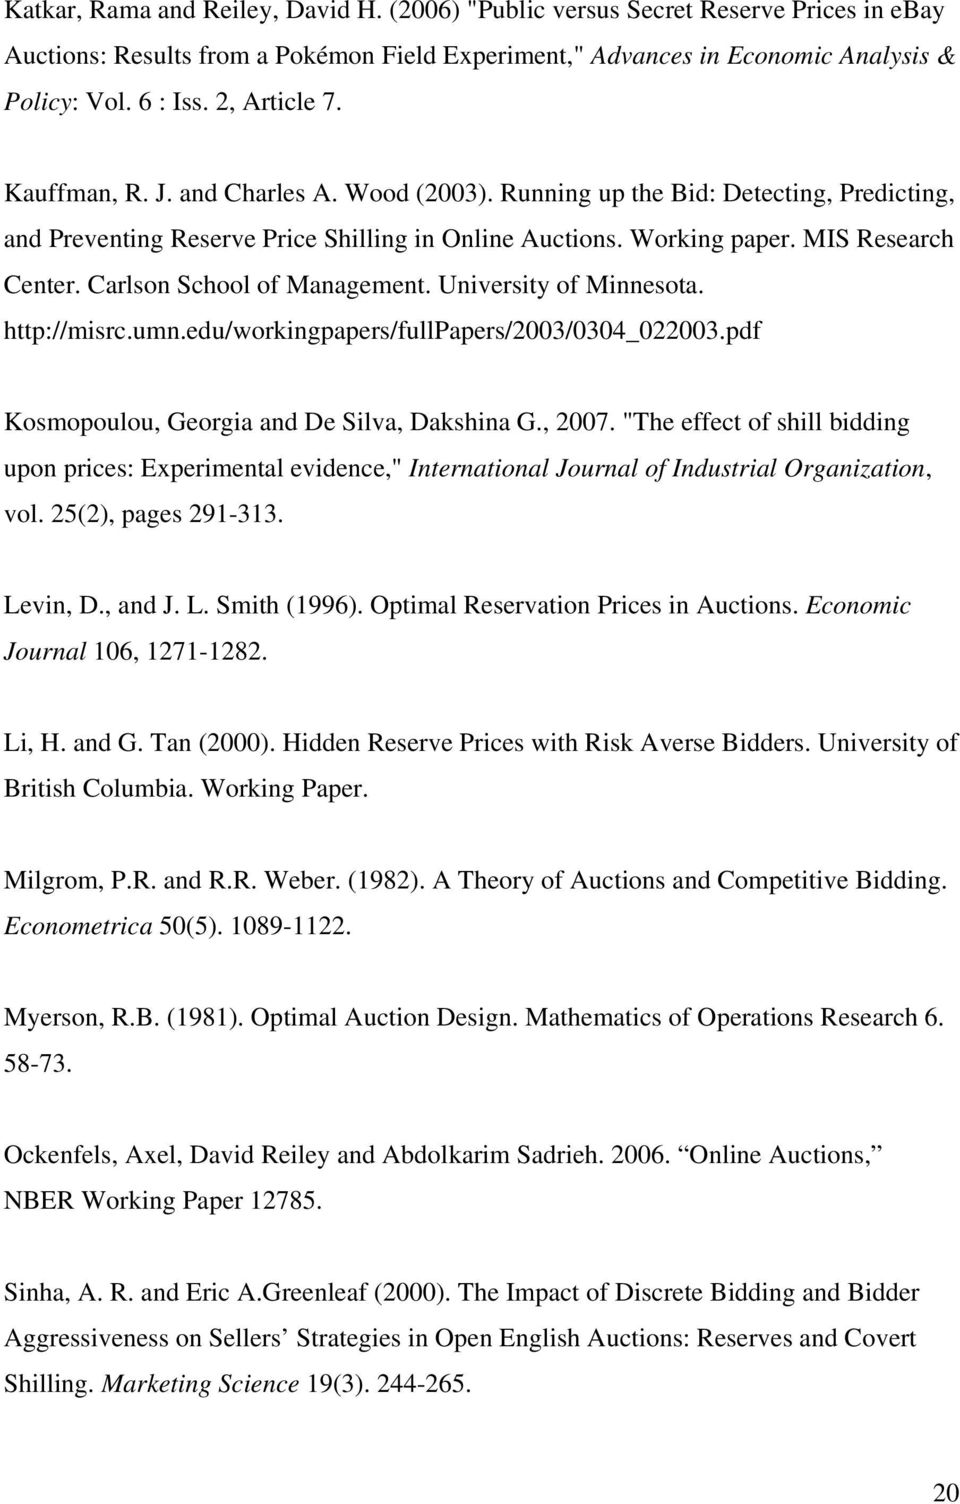 Carlson School of Management. University of Minnesota. http://misrc.umn.edu/workingpapers/fullpapers/2003/0304_022003.pdf Kosmopoulou, Georgia and De Silva, Dakshina G., 2007.